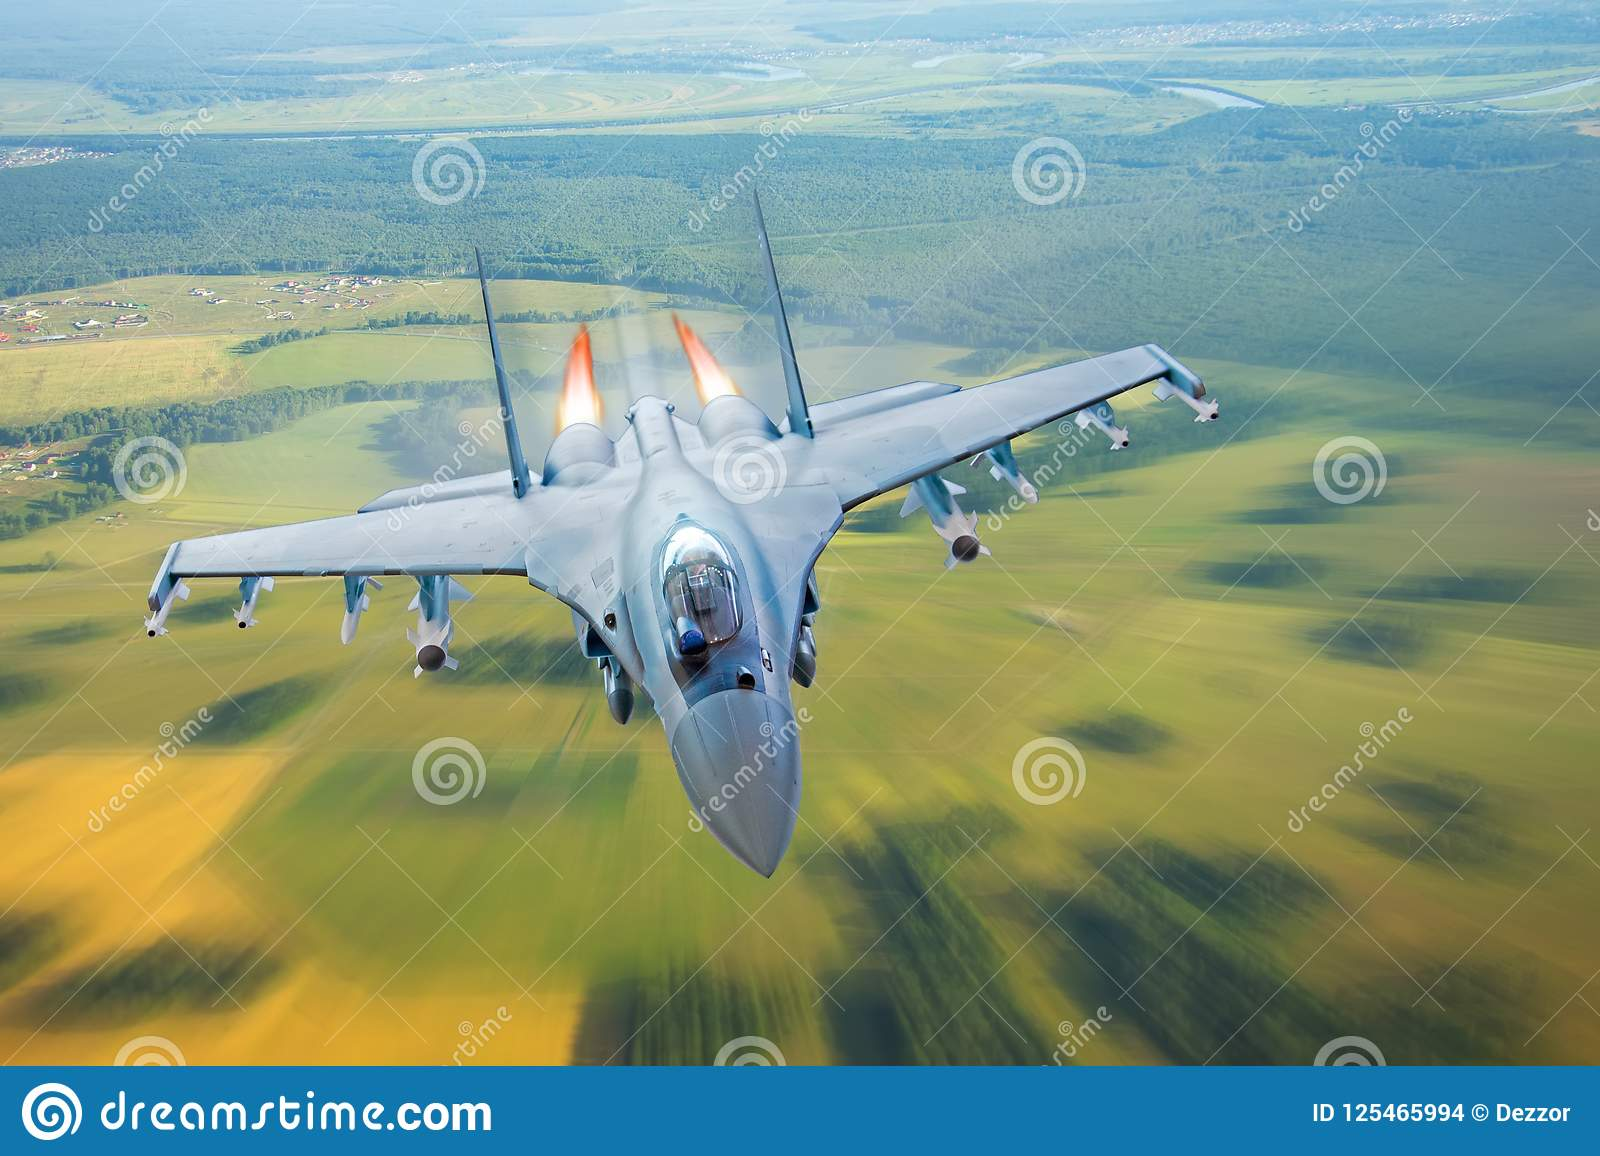 Combat fighter jet on a military mission with weapons - rockets, bombs, weapons on wings, at high speed with fire afterburner engi